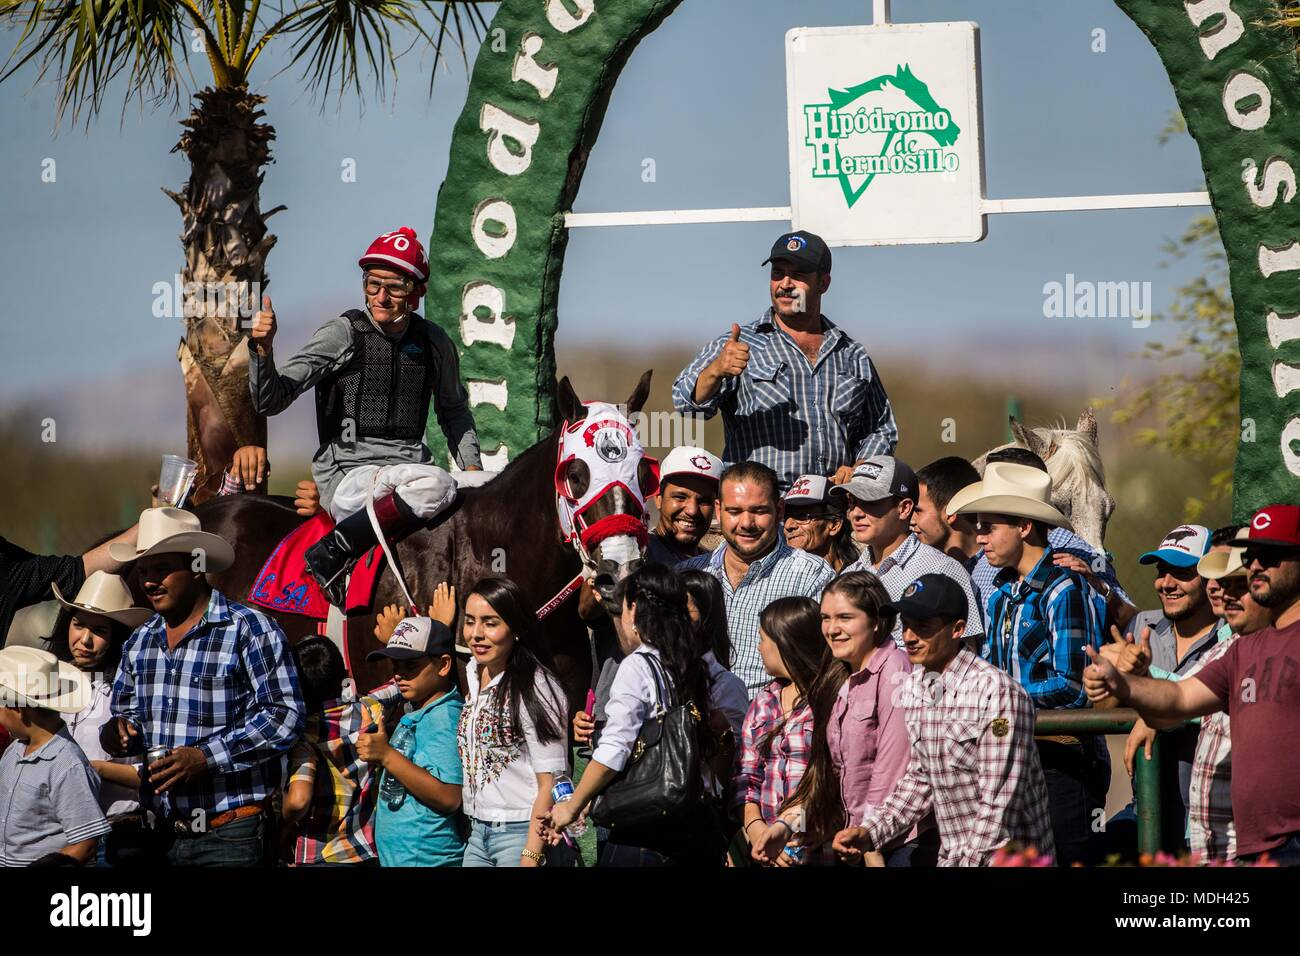 Horse racing at sunset at Hipodromo of Hermosillo, Sonora Mexico. Mexican guys trying to win the race.Horse racing, Horse racing. Betting. racecourse - Stock Image